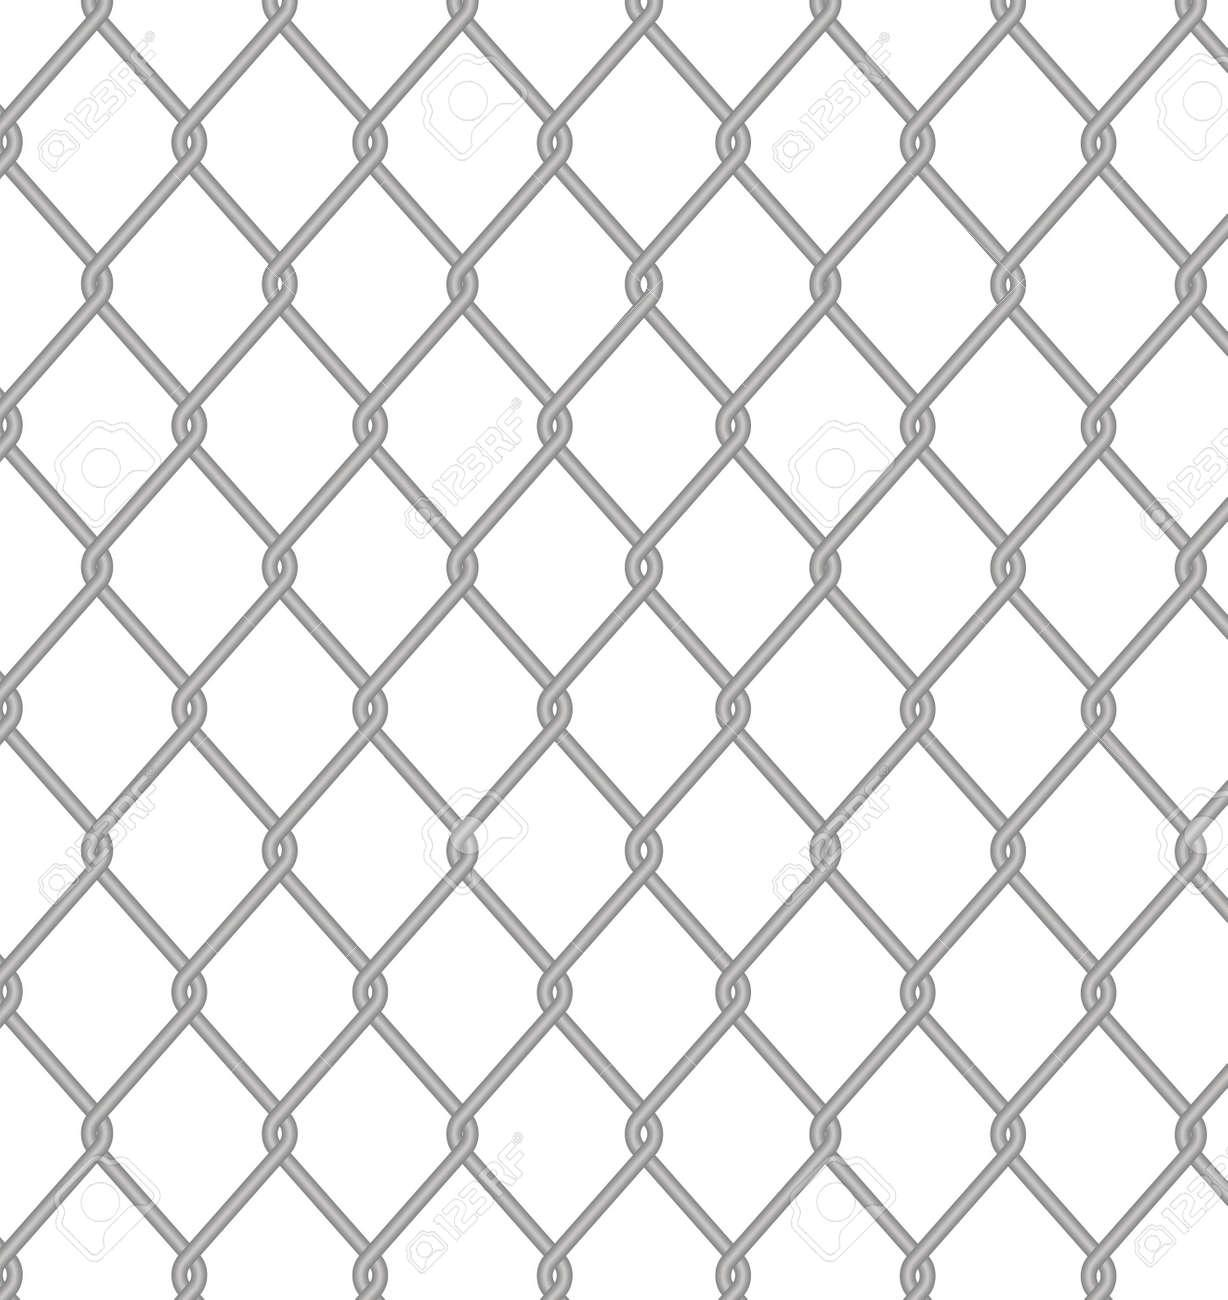 Prison Fence Graphic wire fence. royalty free cliparts, vectors, and stock illustration